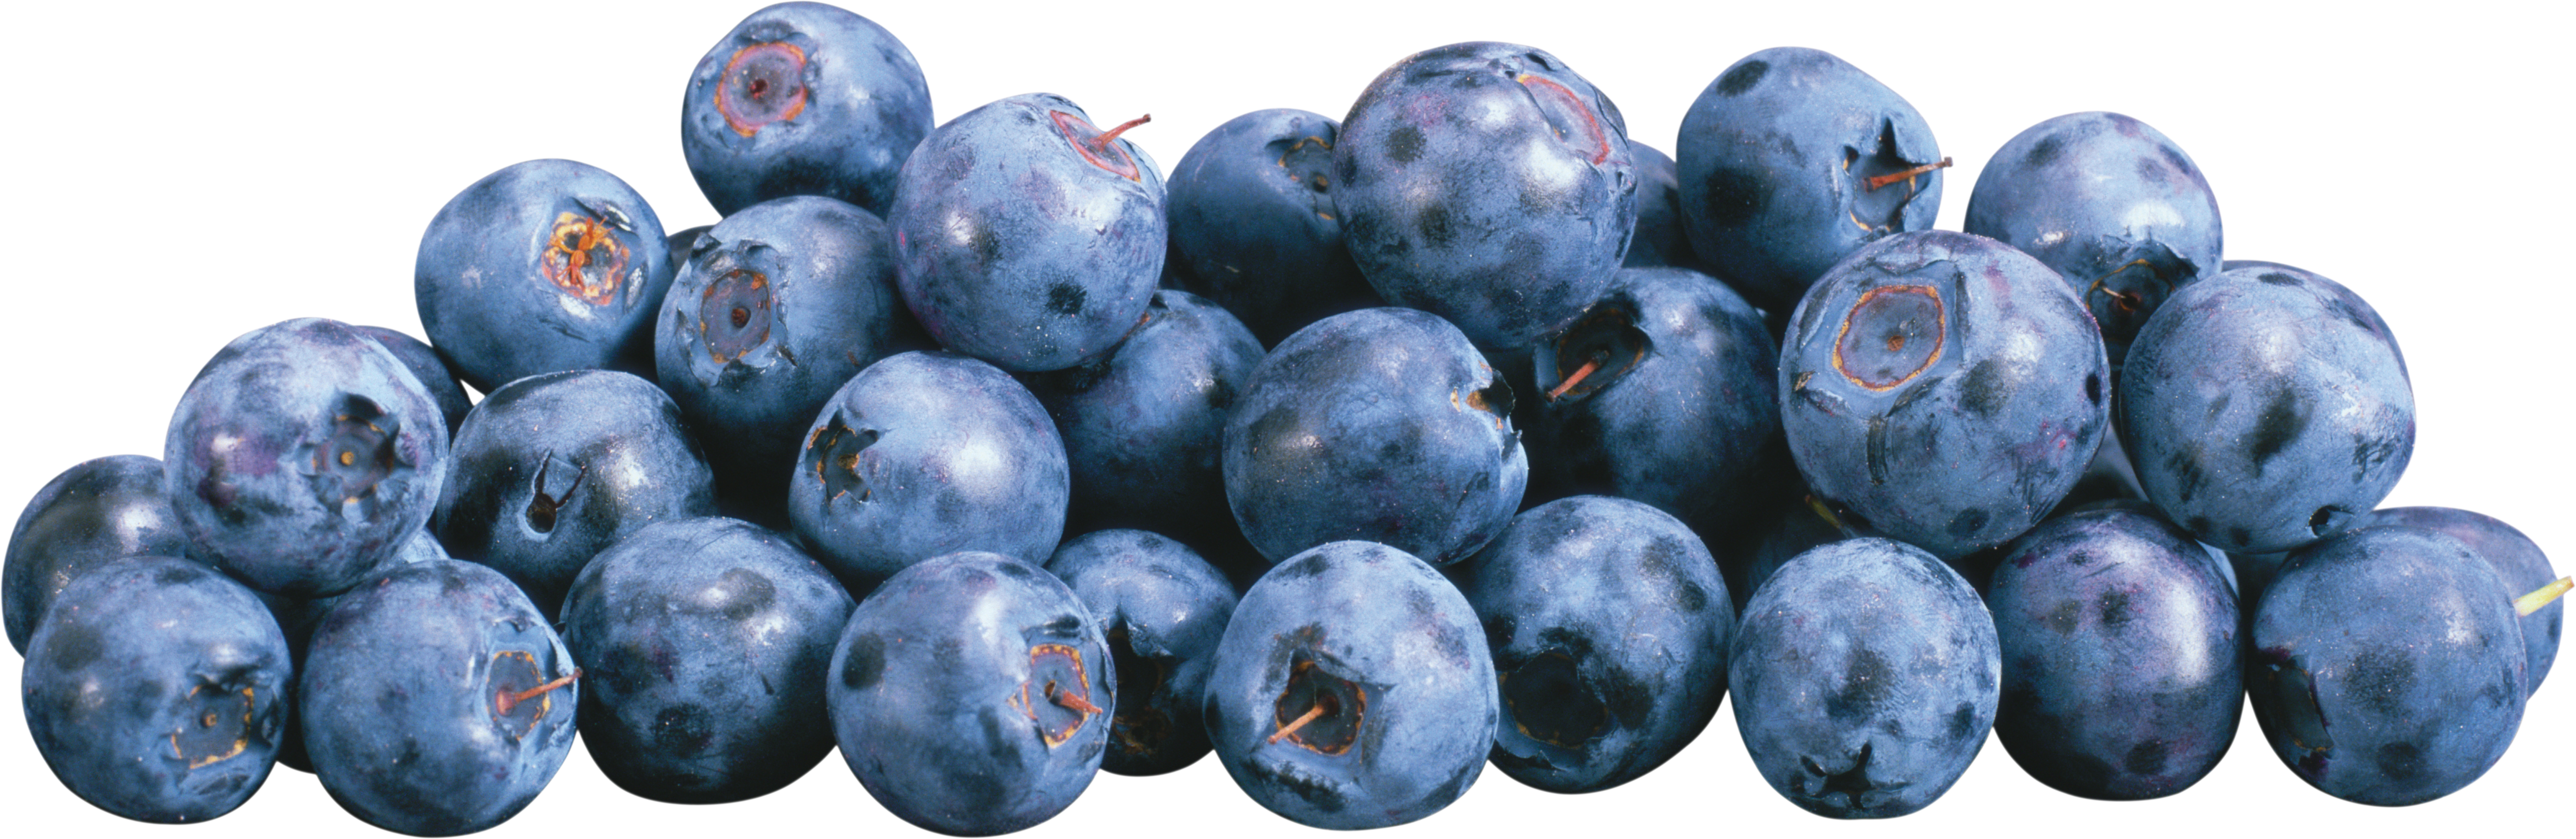 Blueberries PNG images free download.